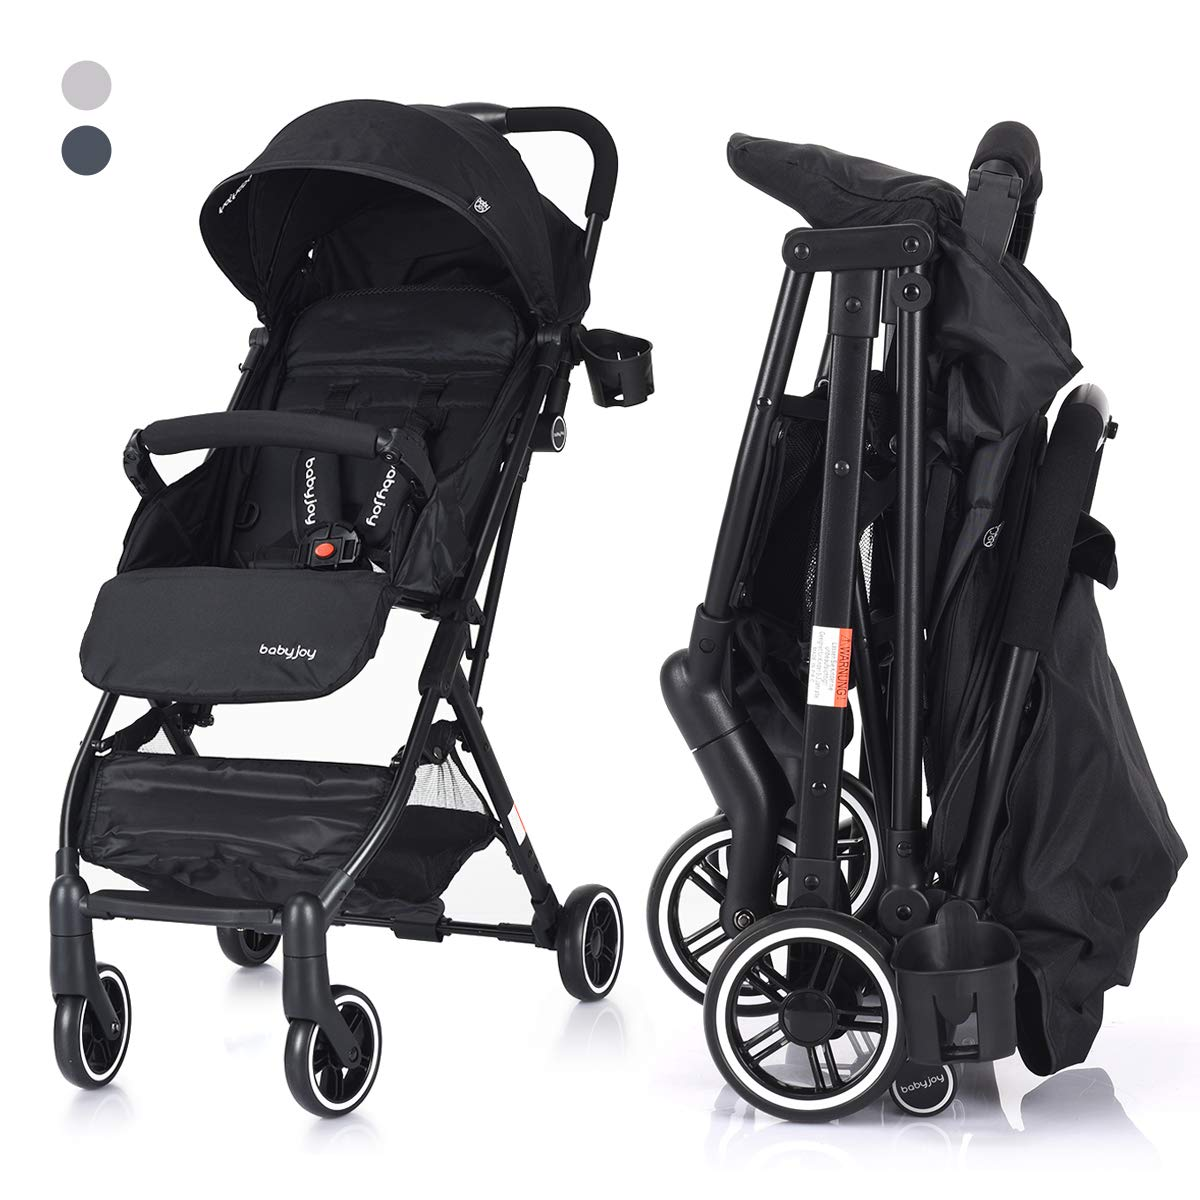 Adjustable Backrest Including Footrest Raincover and Cup Holder 360 Degree Swivel Wheels COSTWAY Kid Pram Folding Baby Stroller with Safe Five-Point Harness and Brake for 0-3 Ages